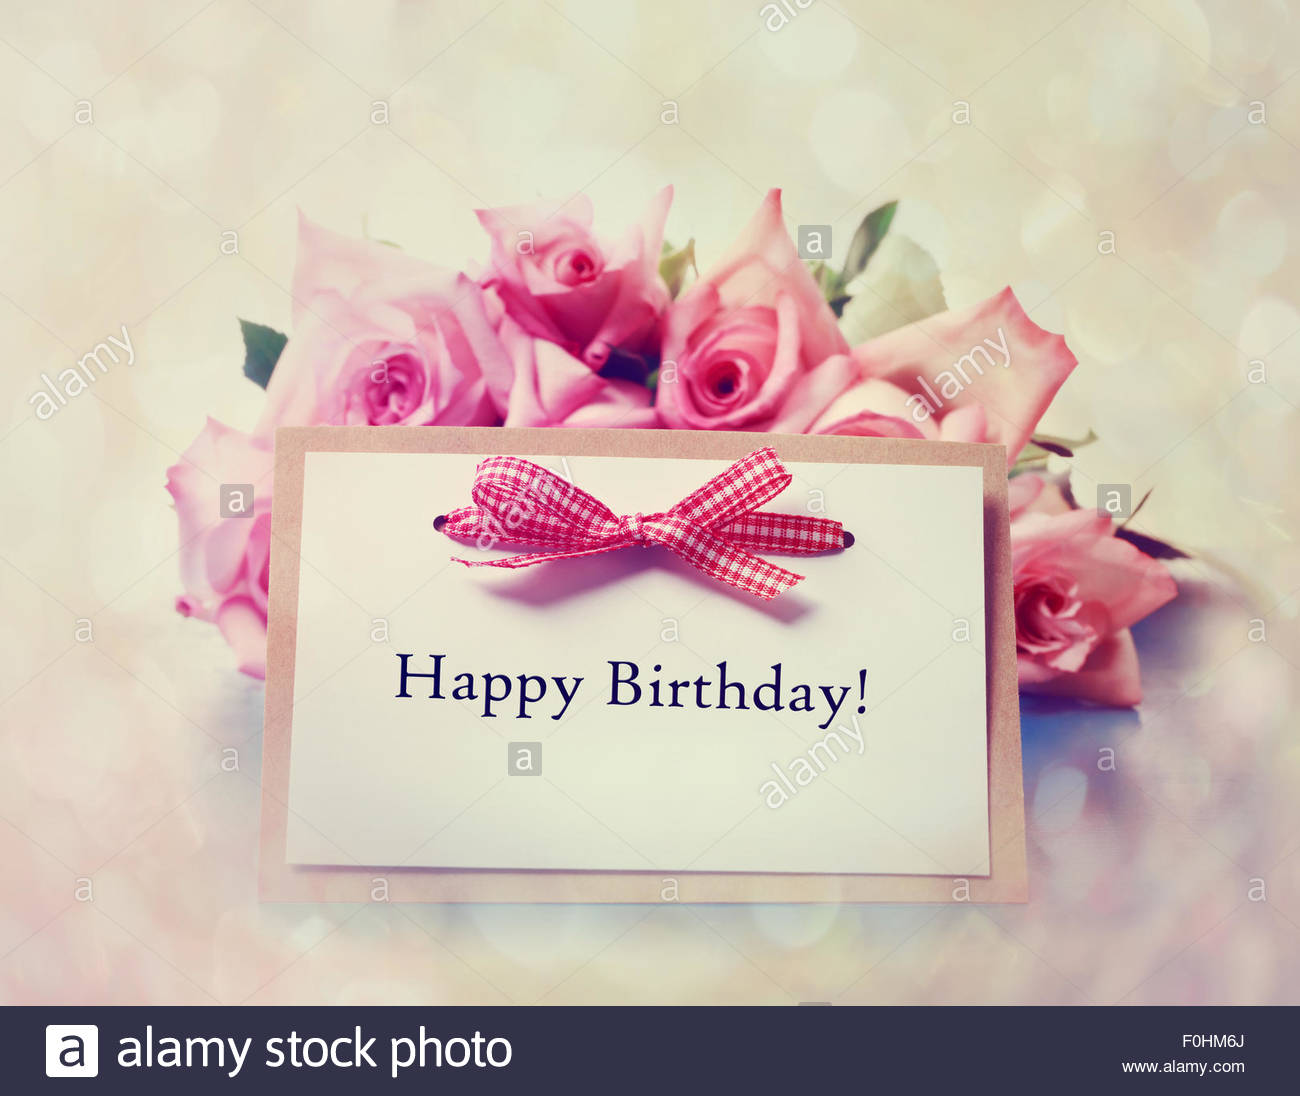 free happy birthday picture messages ; happy-birthday-message-card-with-retro-pink-roses-F0HM6J